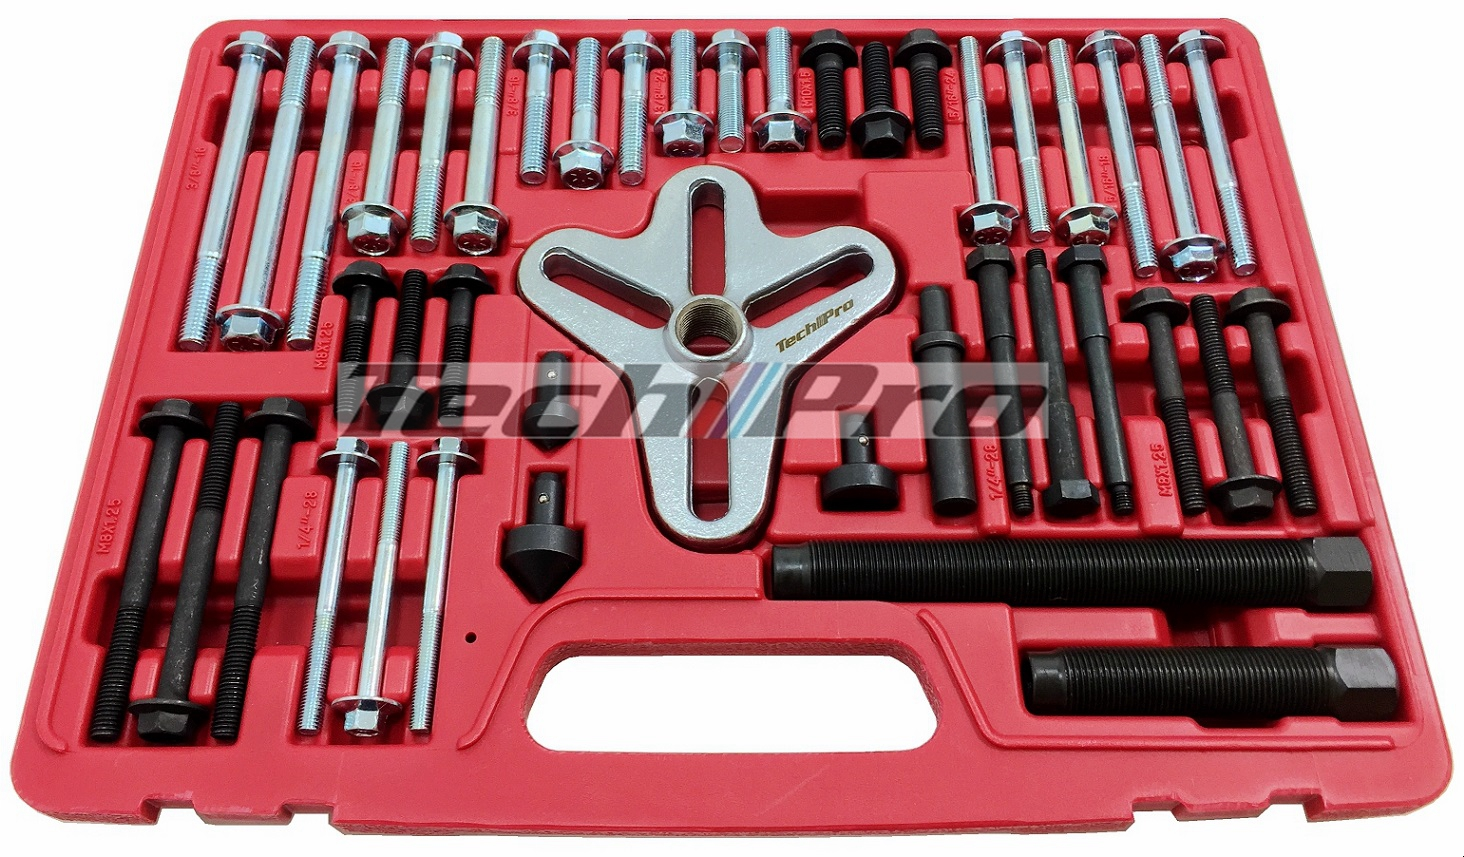 EE-026 - Harmonic Balancer Puller Master Set - Flange Type - Click Image to Close